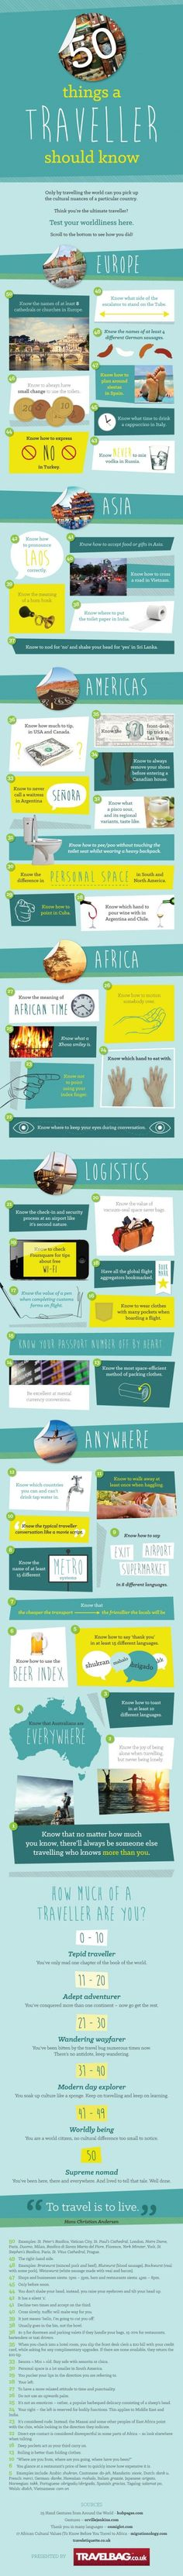 50 Things a Traveler Should know. #studyabroad #travel #europe